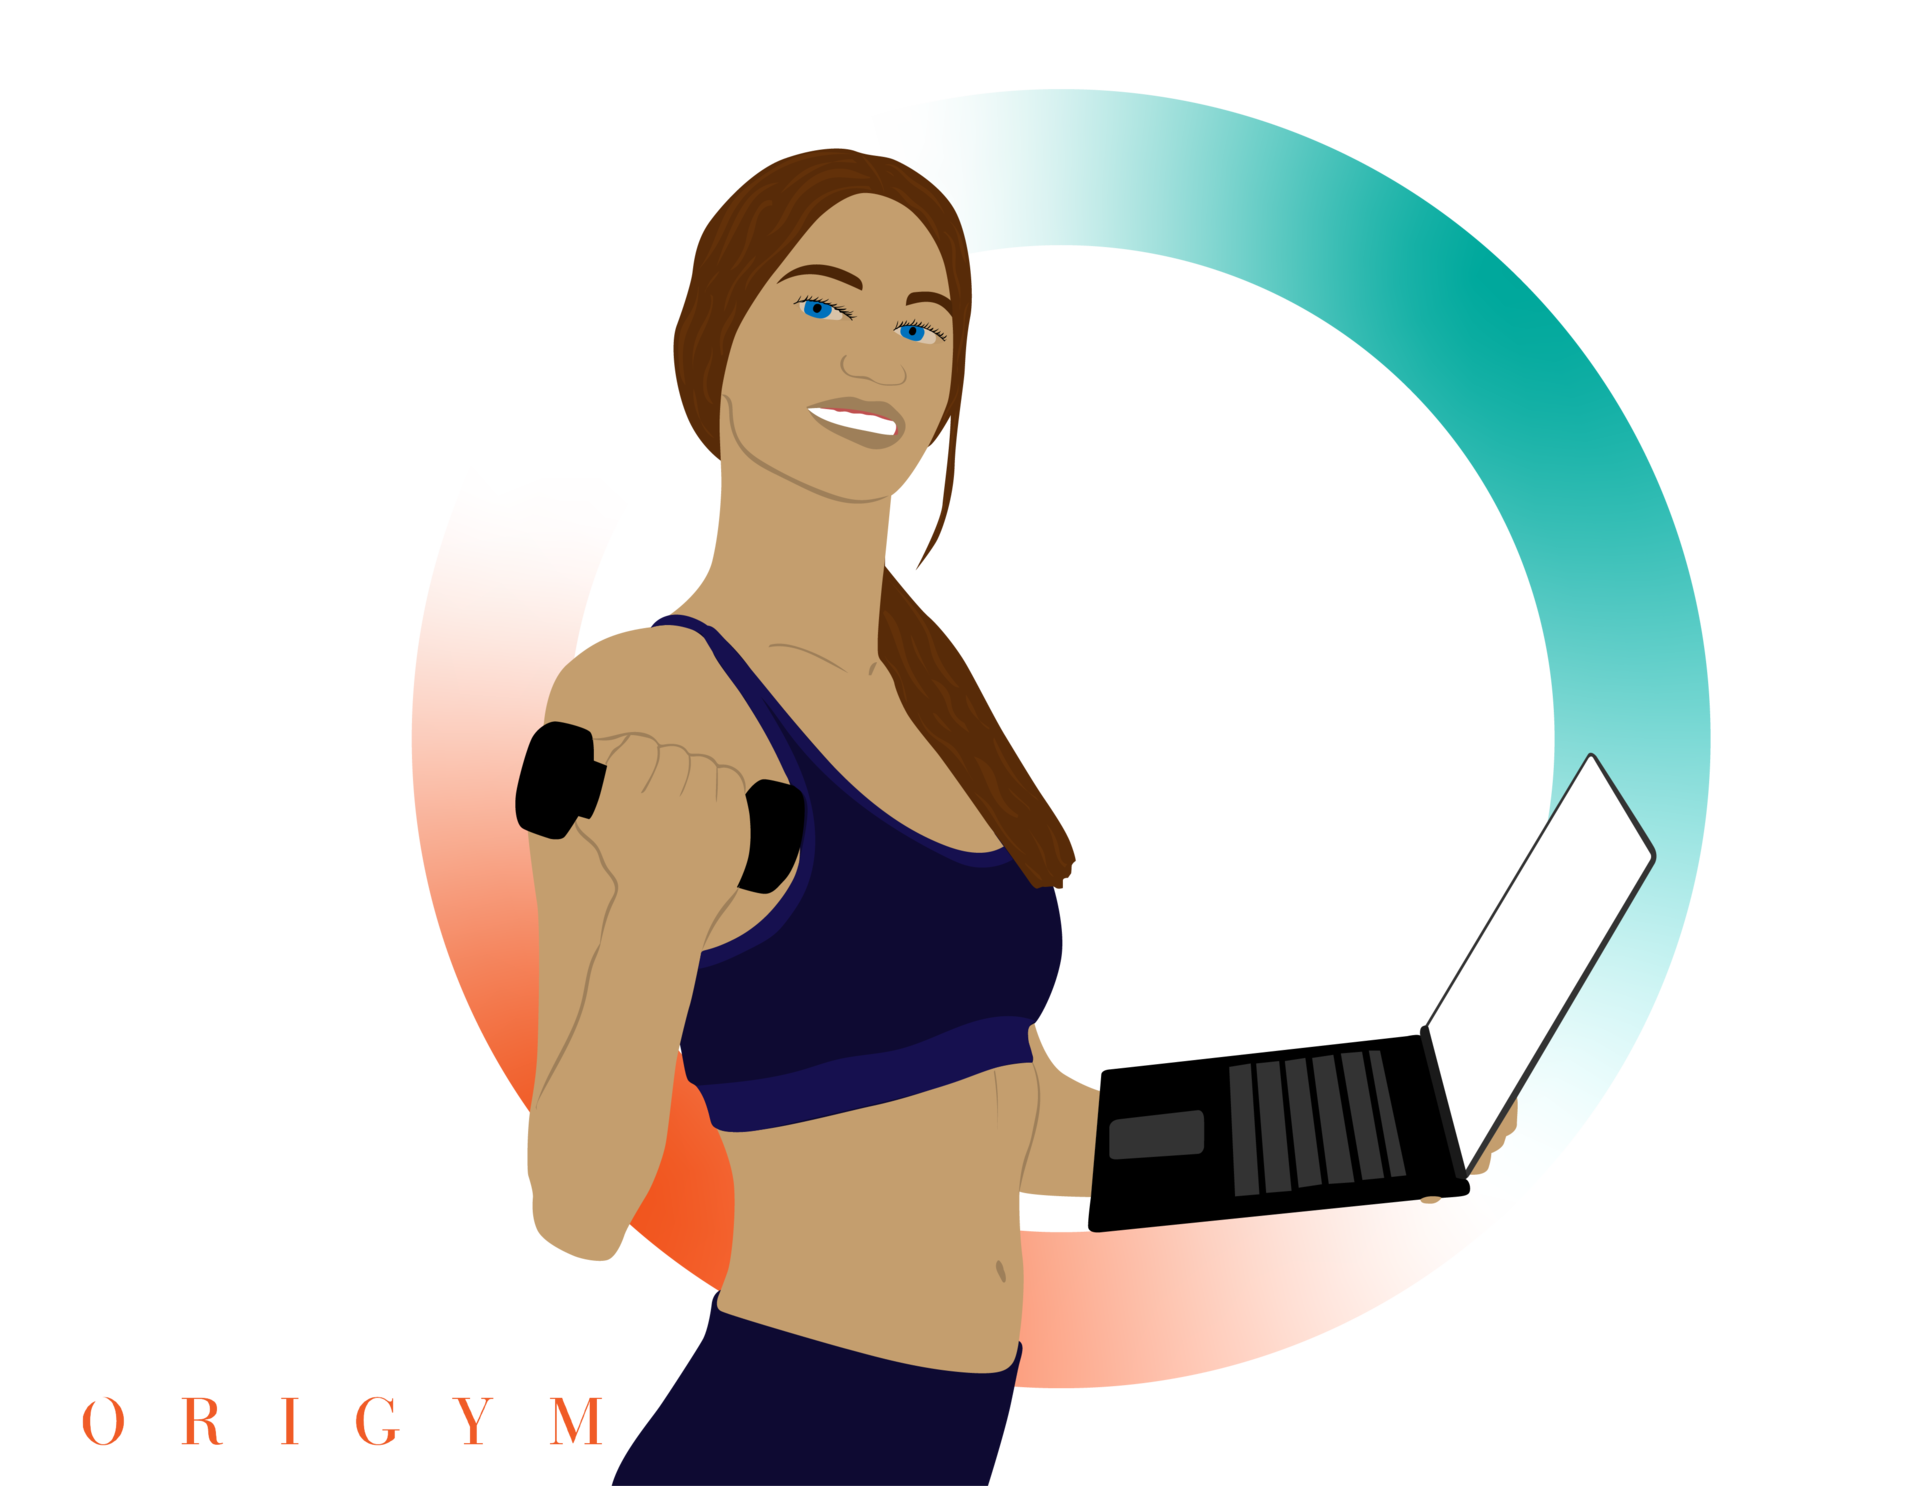 Register PT Business personal trainer holding a laptop and a dumbbell graphic